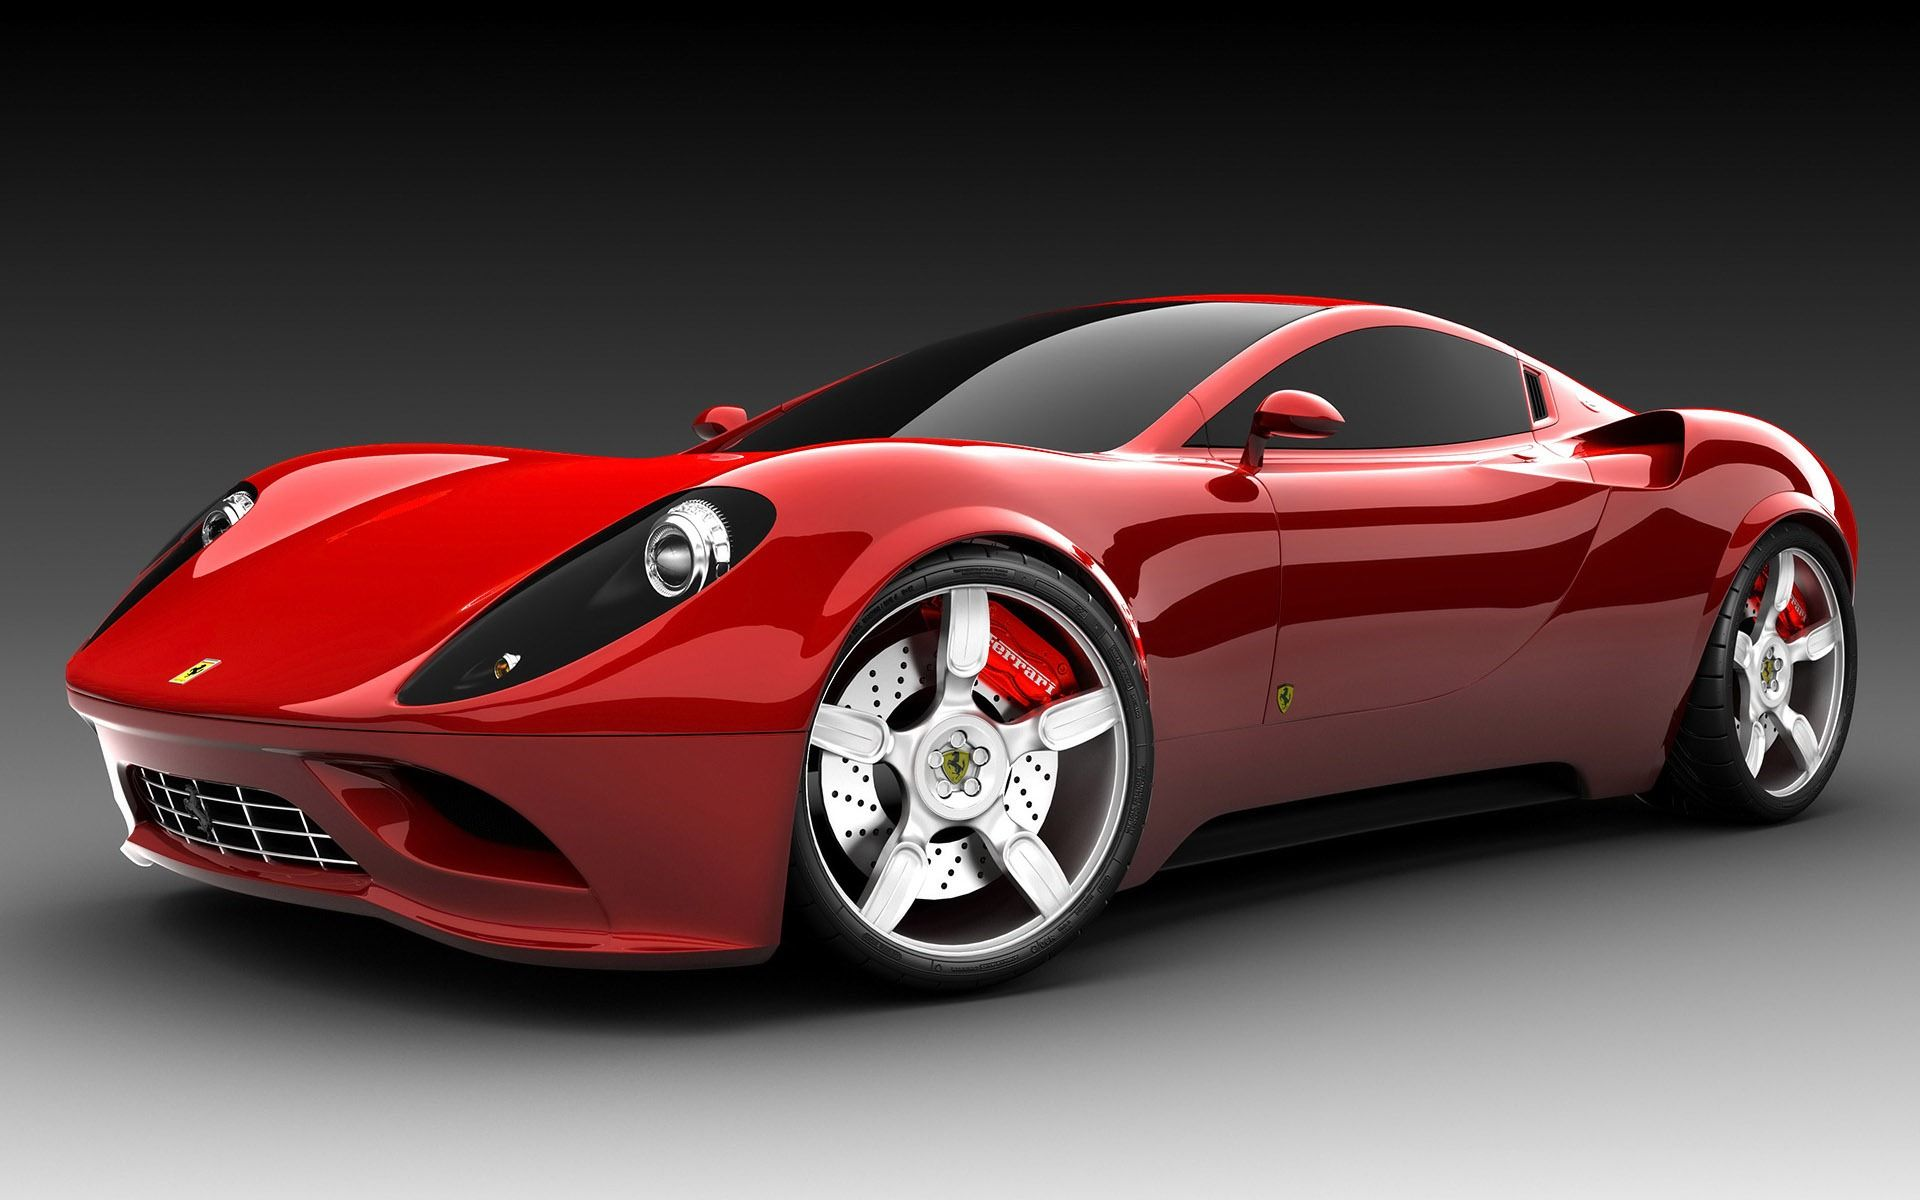 Car Desktop Wallpapers Free Download Car Desktop Wallpapers Customize Your Desktop With Car Hd Desktop Ferrari Car Sports Cars Ferrari Sports Car Wallpaper